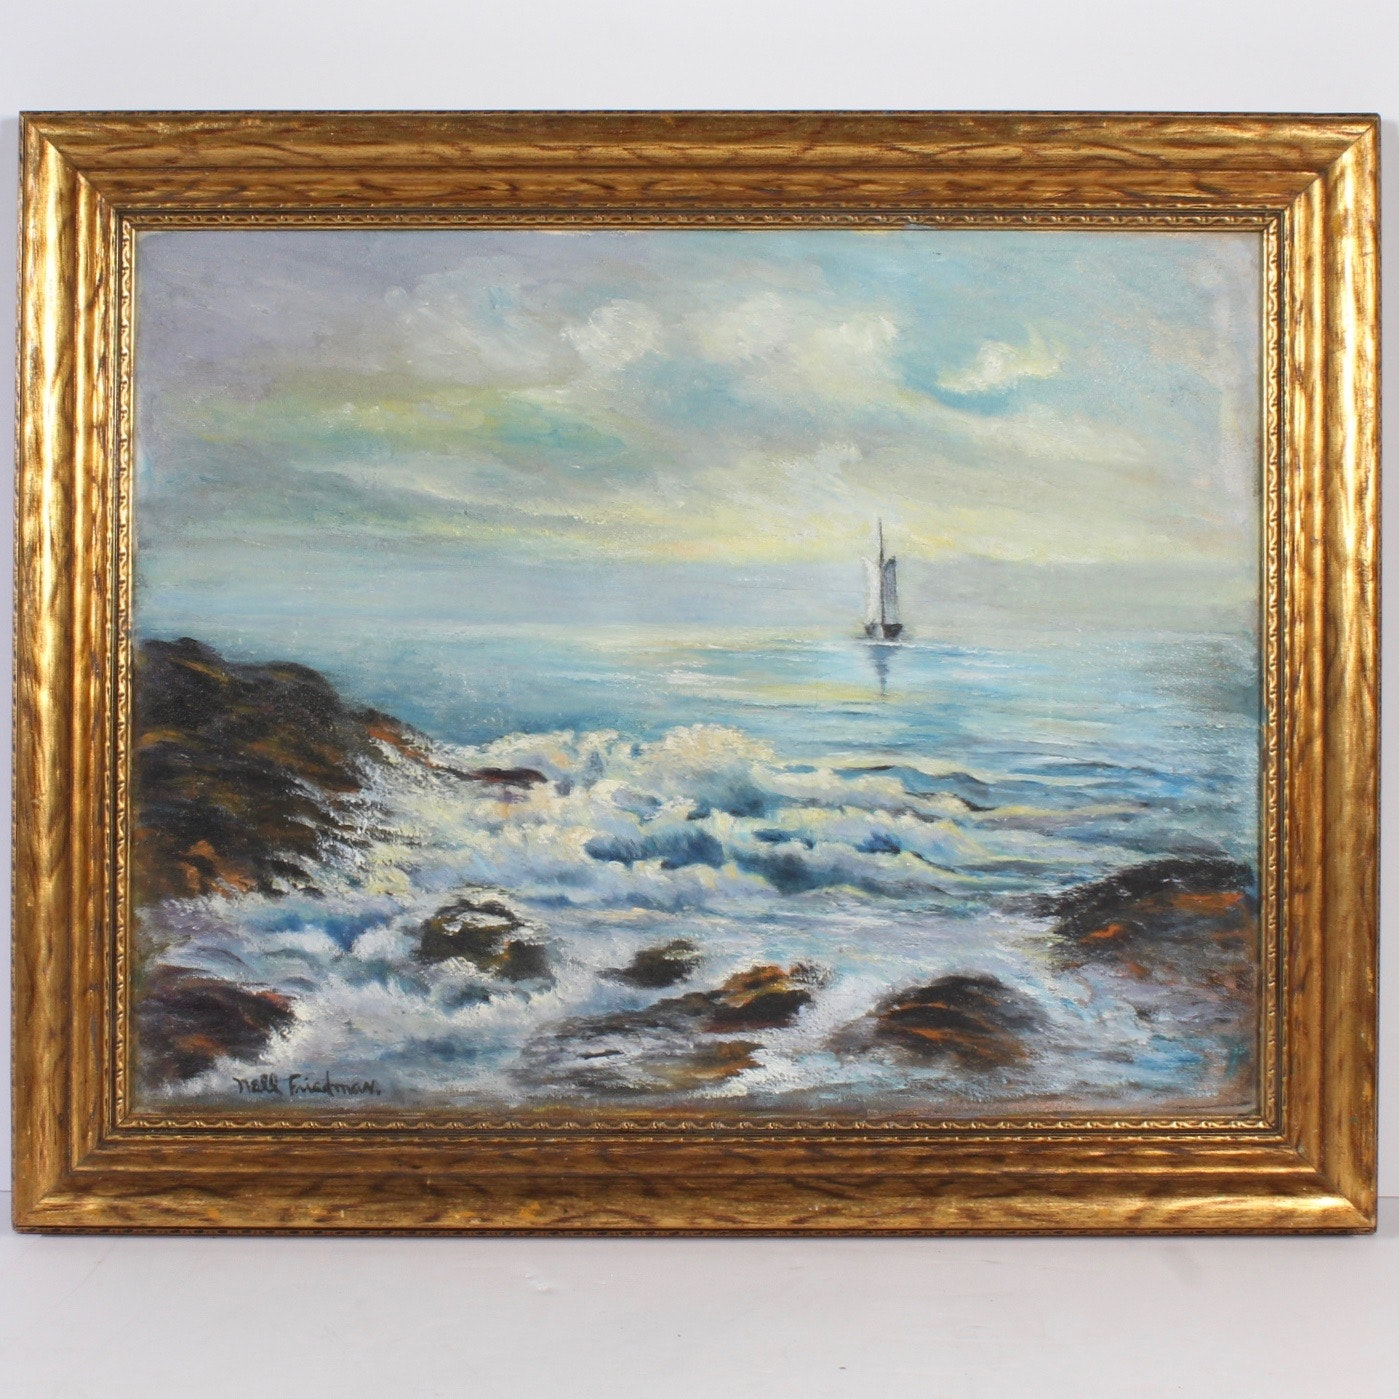 Nell Friedman Seascape Oil on Canvas Painting